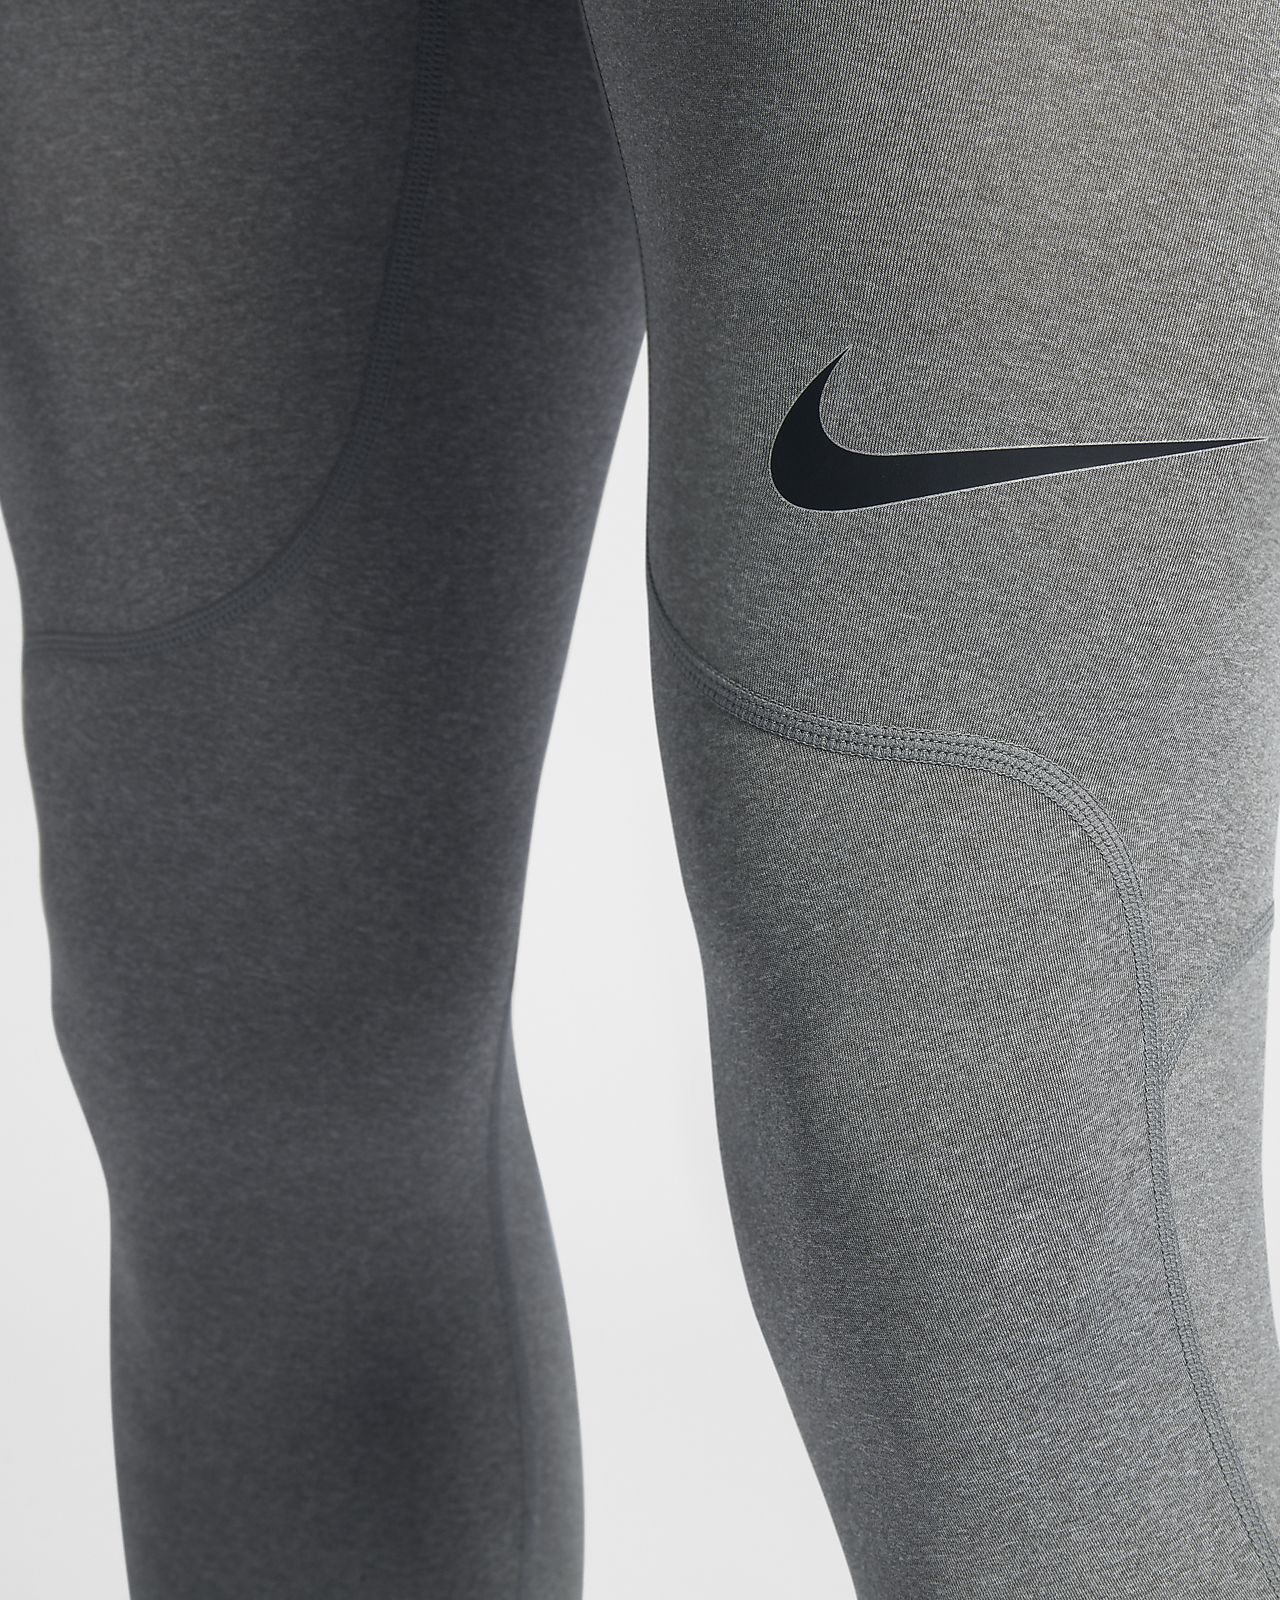 fae70f41b219d Low Resolution Nike Pro Men's Tights Nike Pro Men's Tights